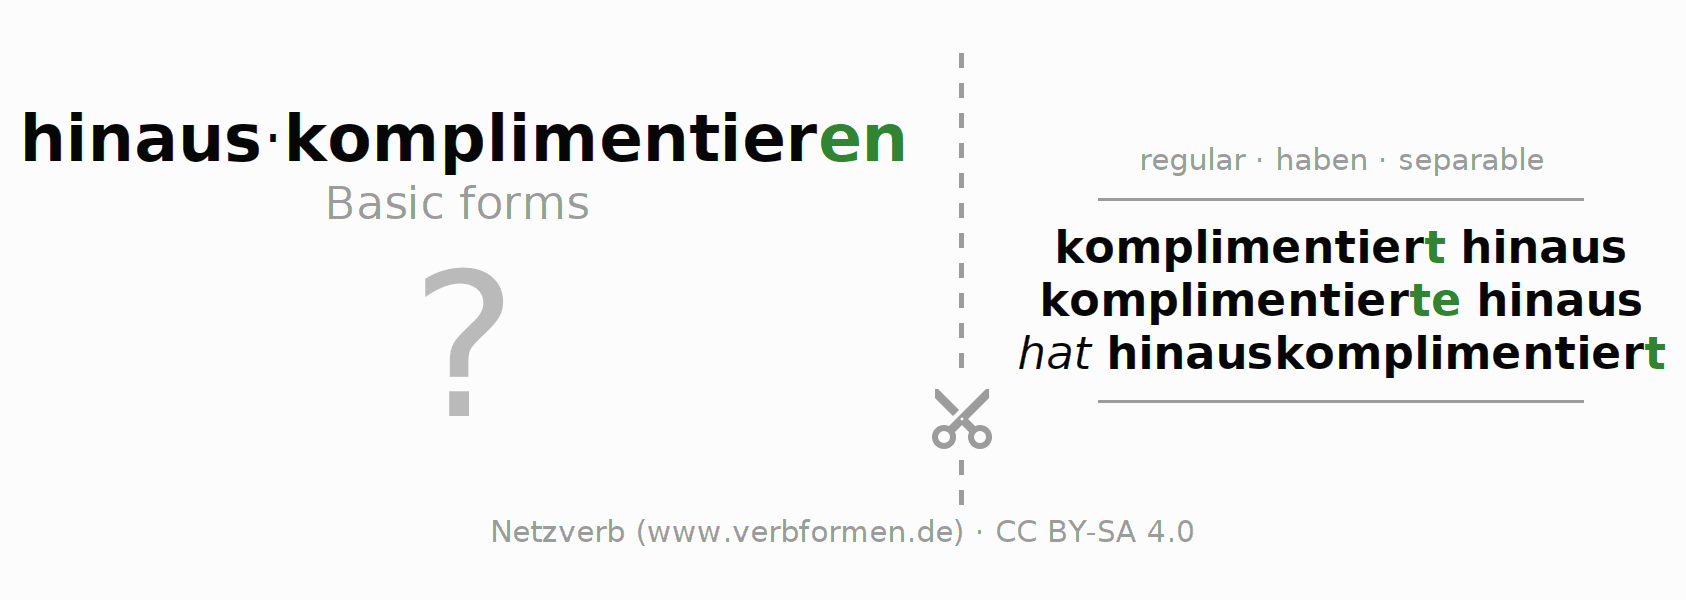 Flash cards for the conjugation of the verb hinauskomplimentieren